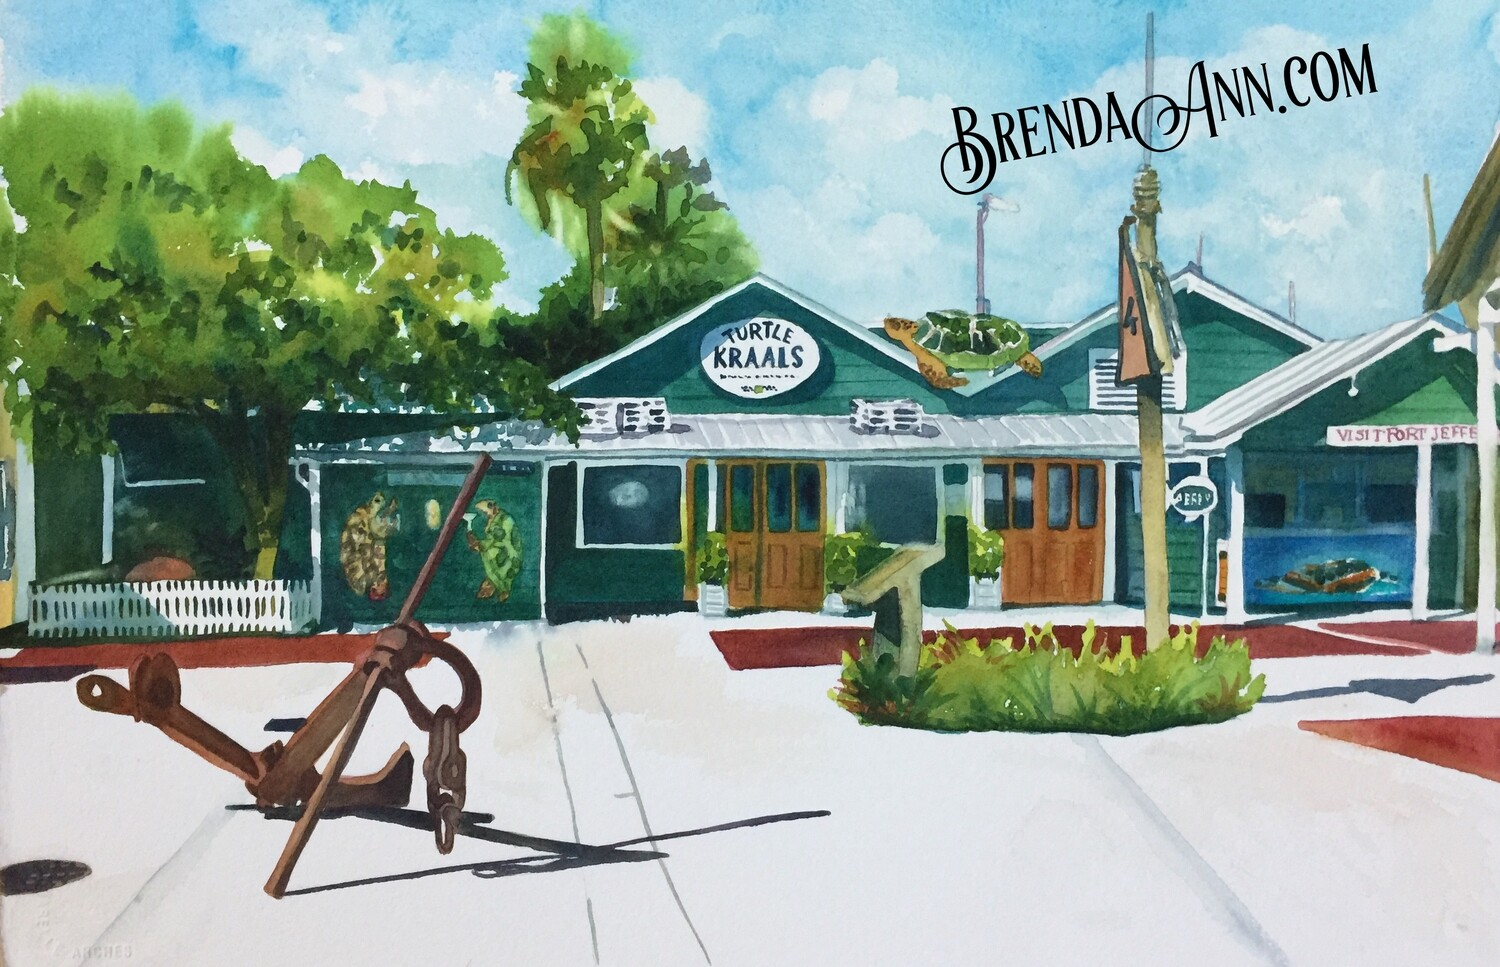 Turtle Kraals in Key West, FL - Hand Signed Archival Watercolor Print